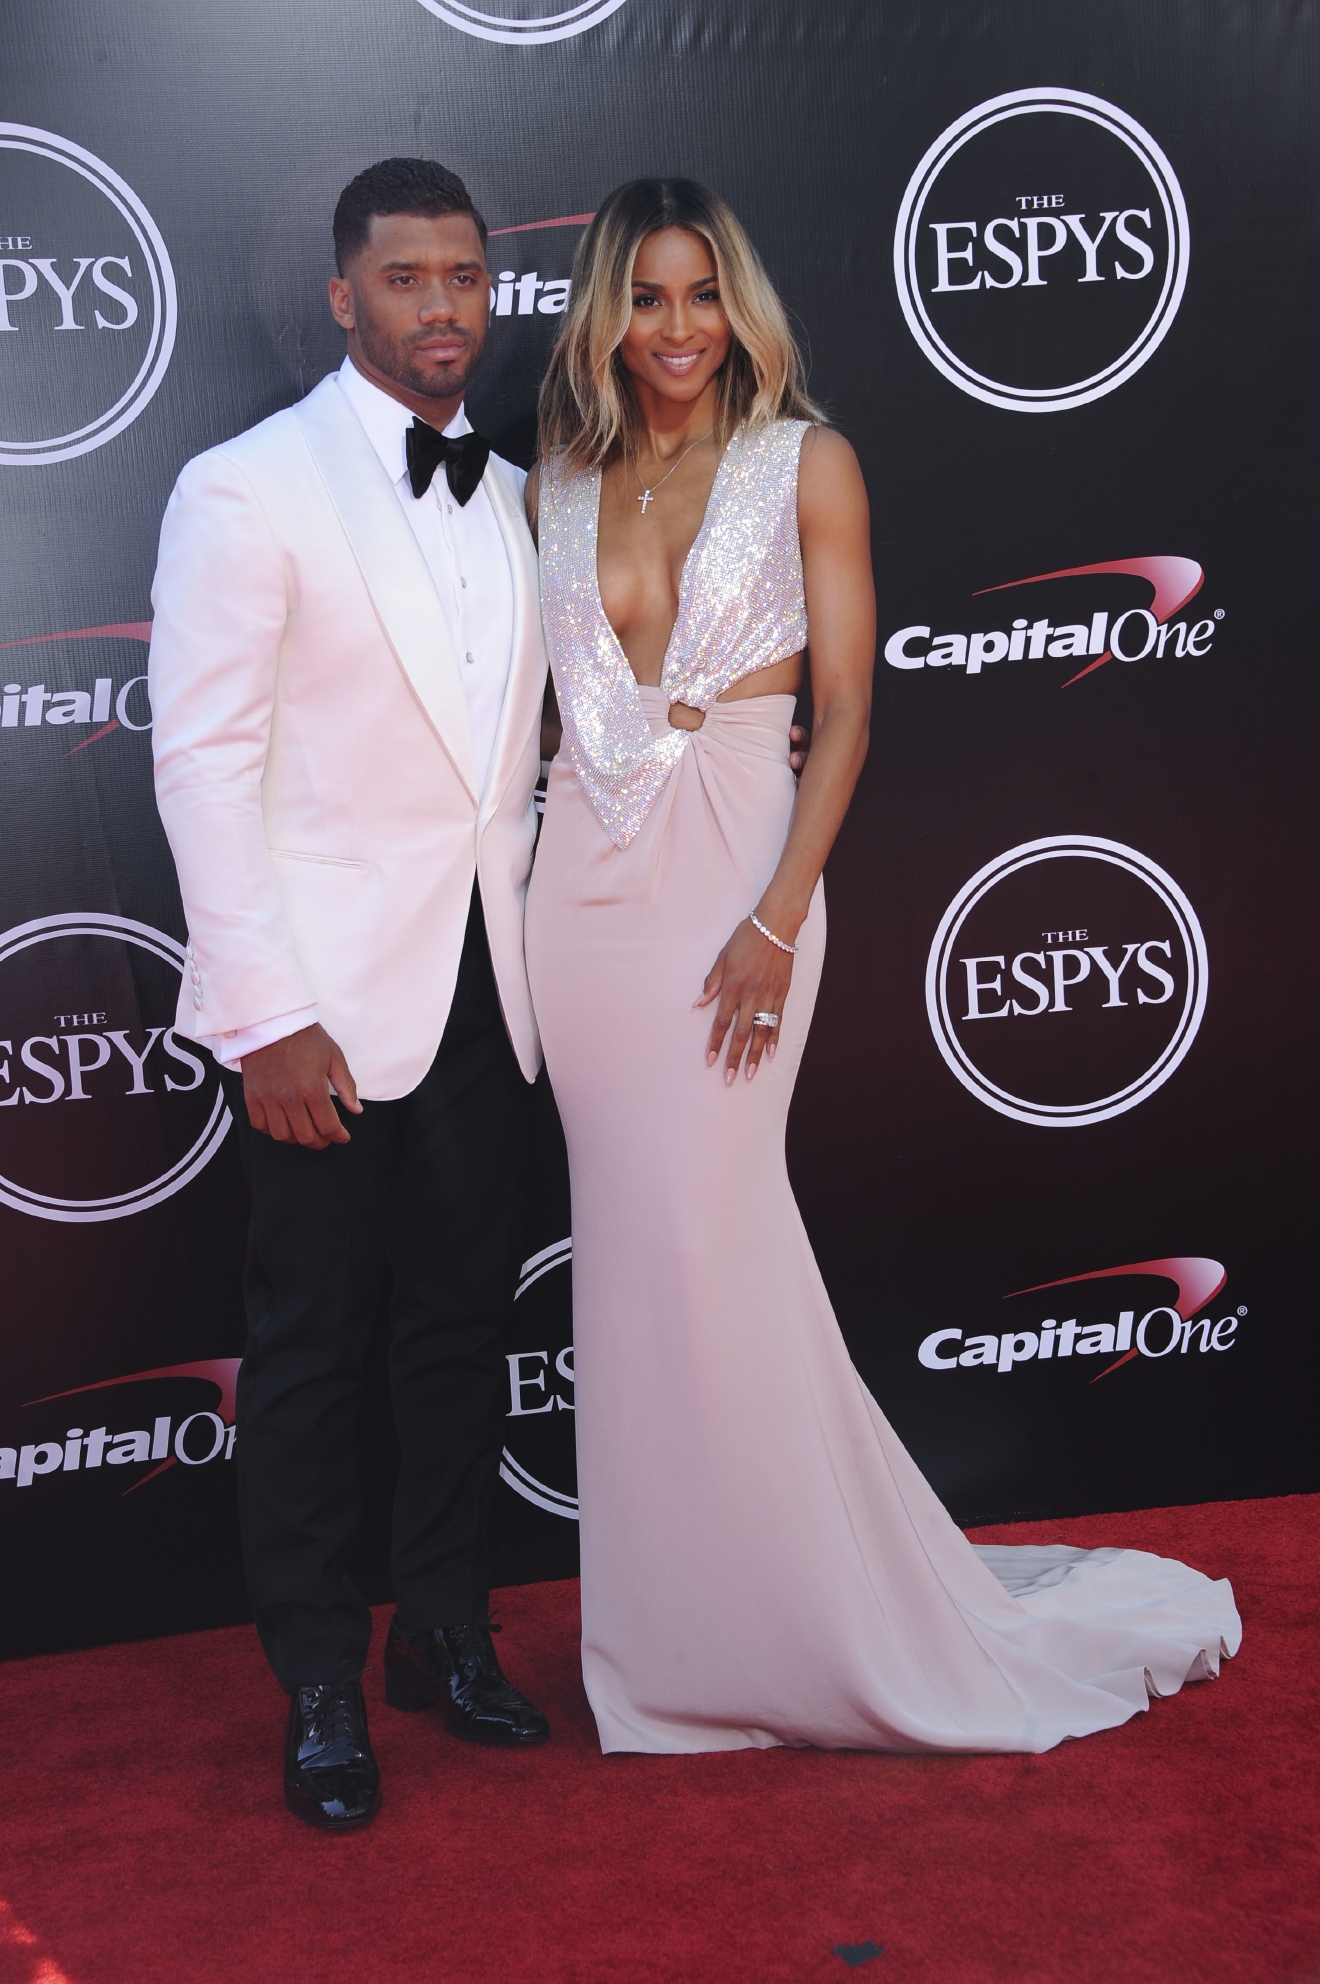 Marriage looks good on these two! Barely a week after their UK marriage, Russell Wilson and Ciara stun on the ESPYs red carpet. Mrs. Wilson wore Roberto Cavalli, and her husband donned Tom Ford.  (Image: Apega/WENN.com)